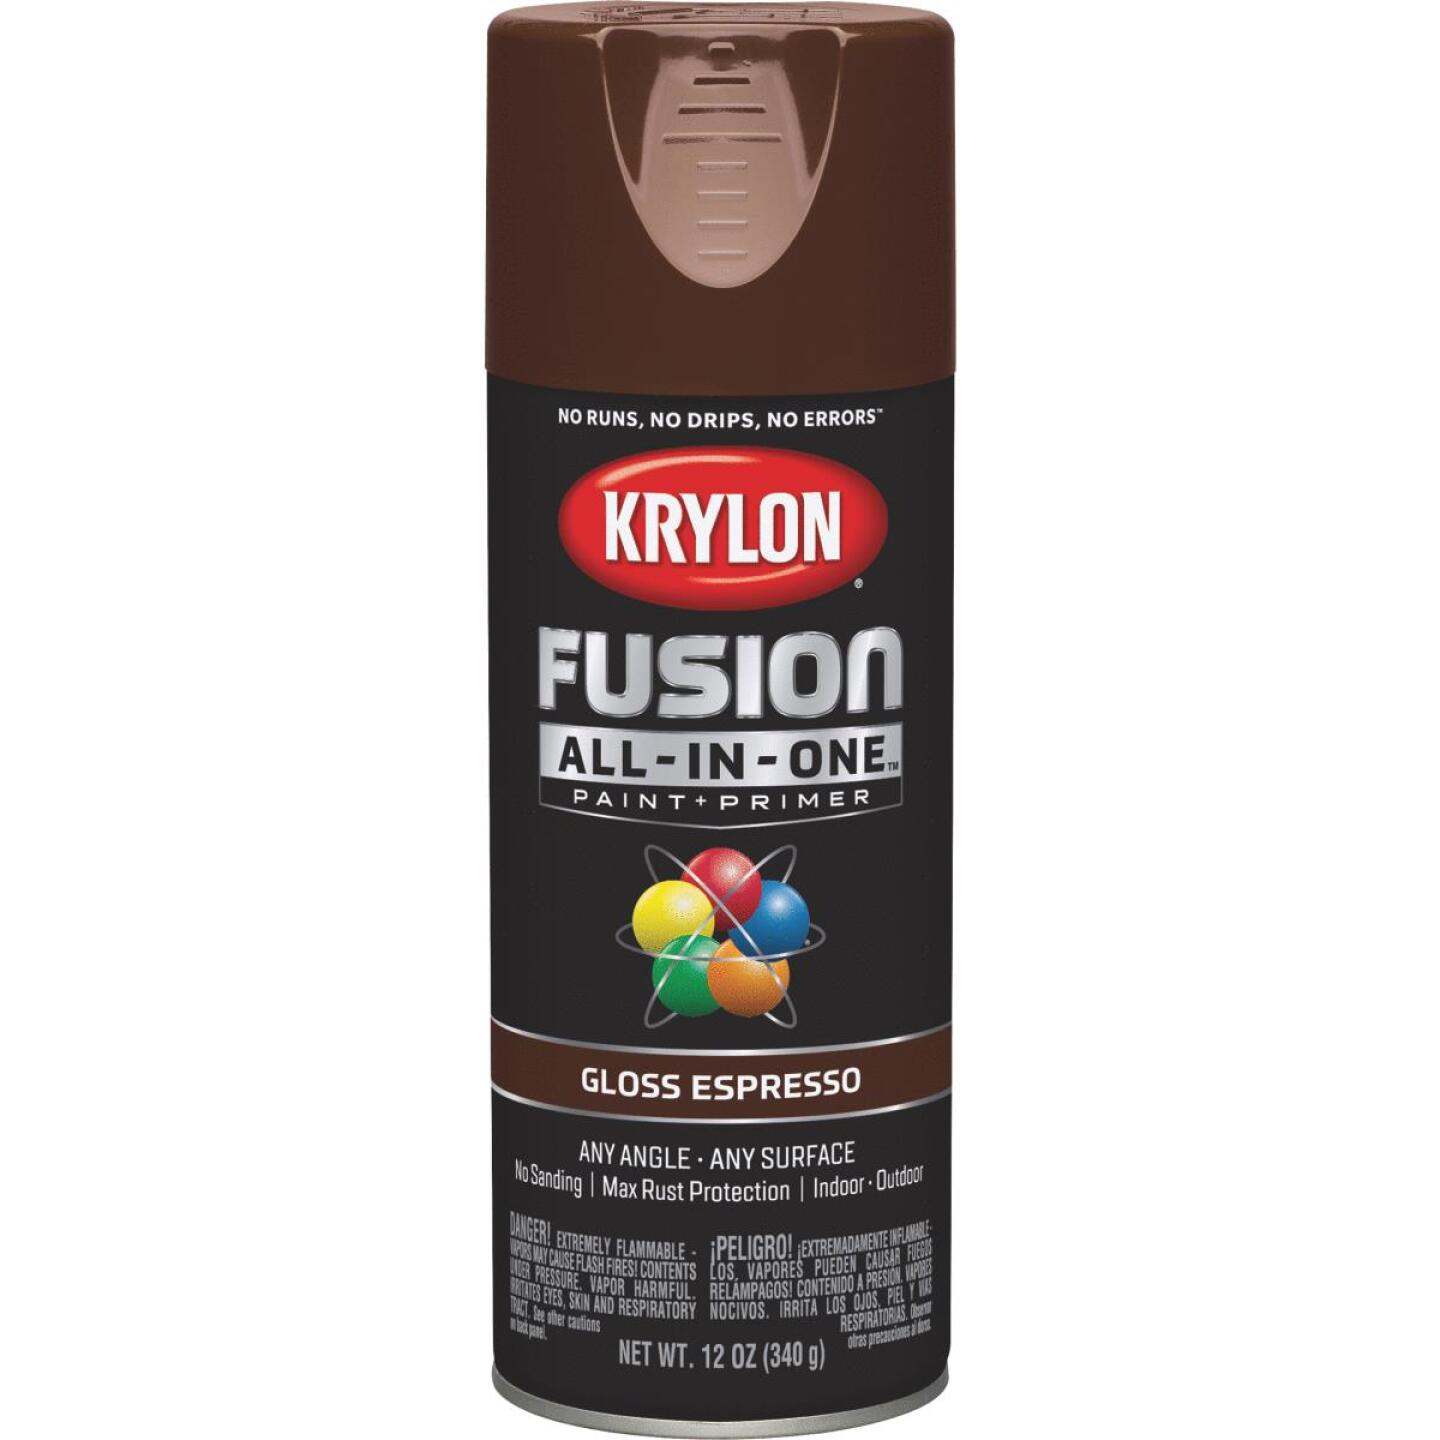 Krylon Fusion All-In-One Gloss Spray Paint & Primer, Espresso Image 1